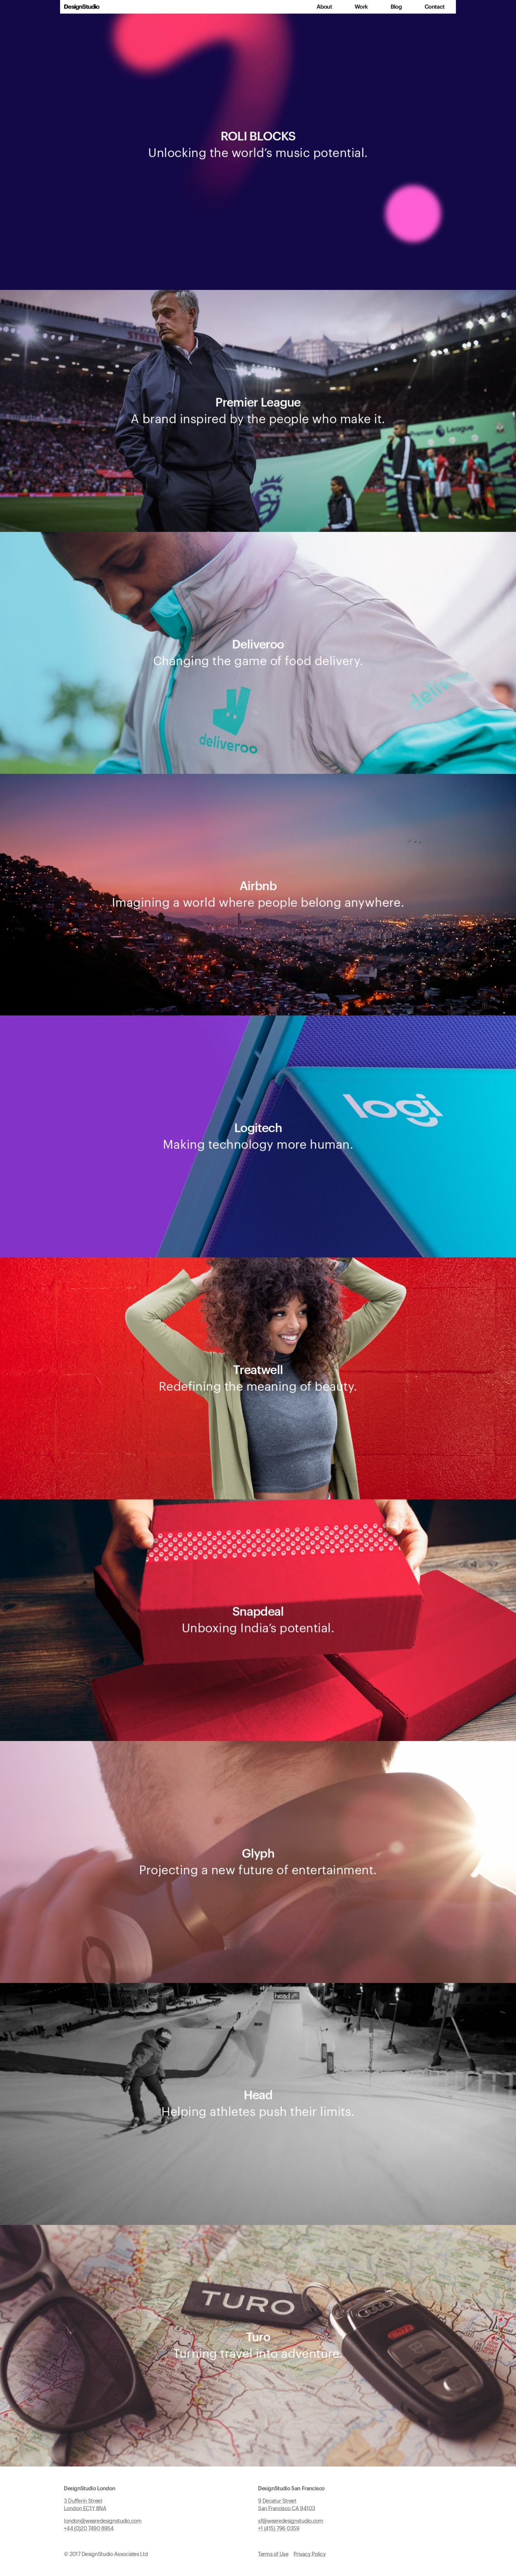 Branding and Digital Creative Agency | DesignStudio